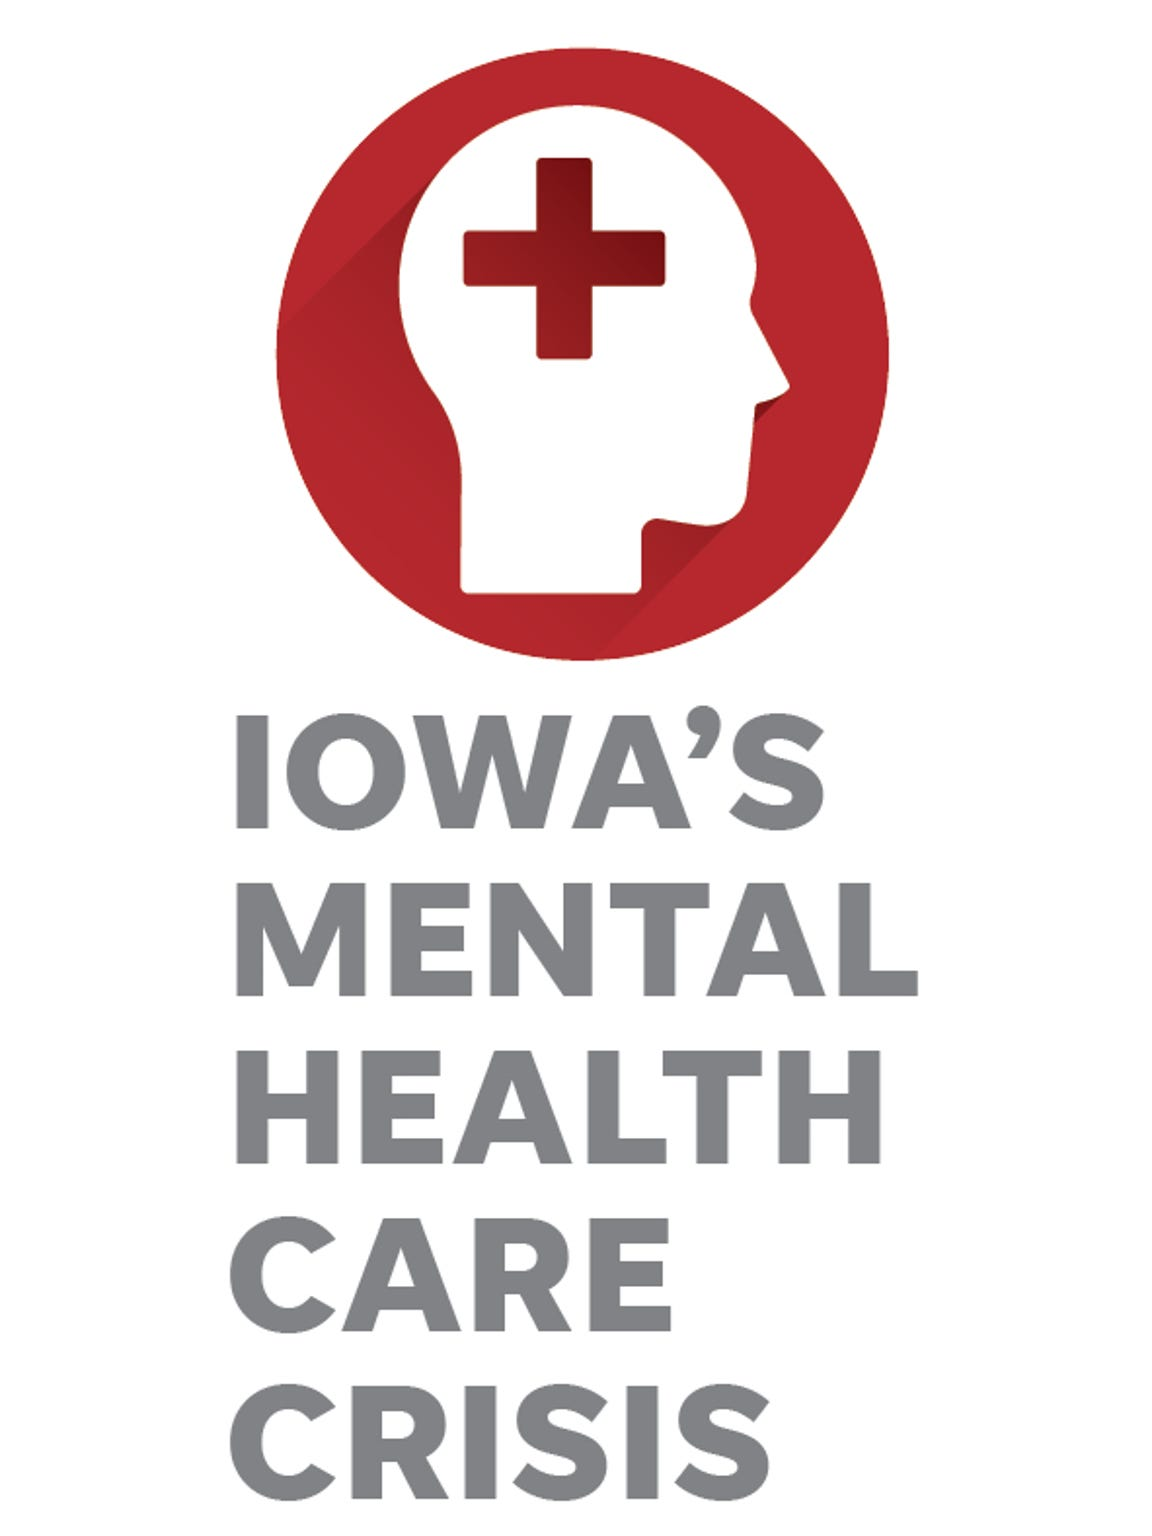 Iowa's Mental Health Care Crisis series.